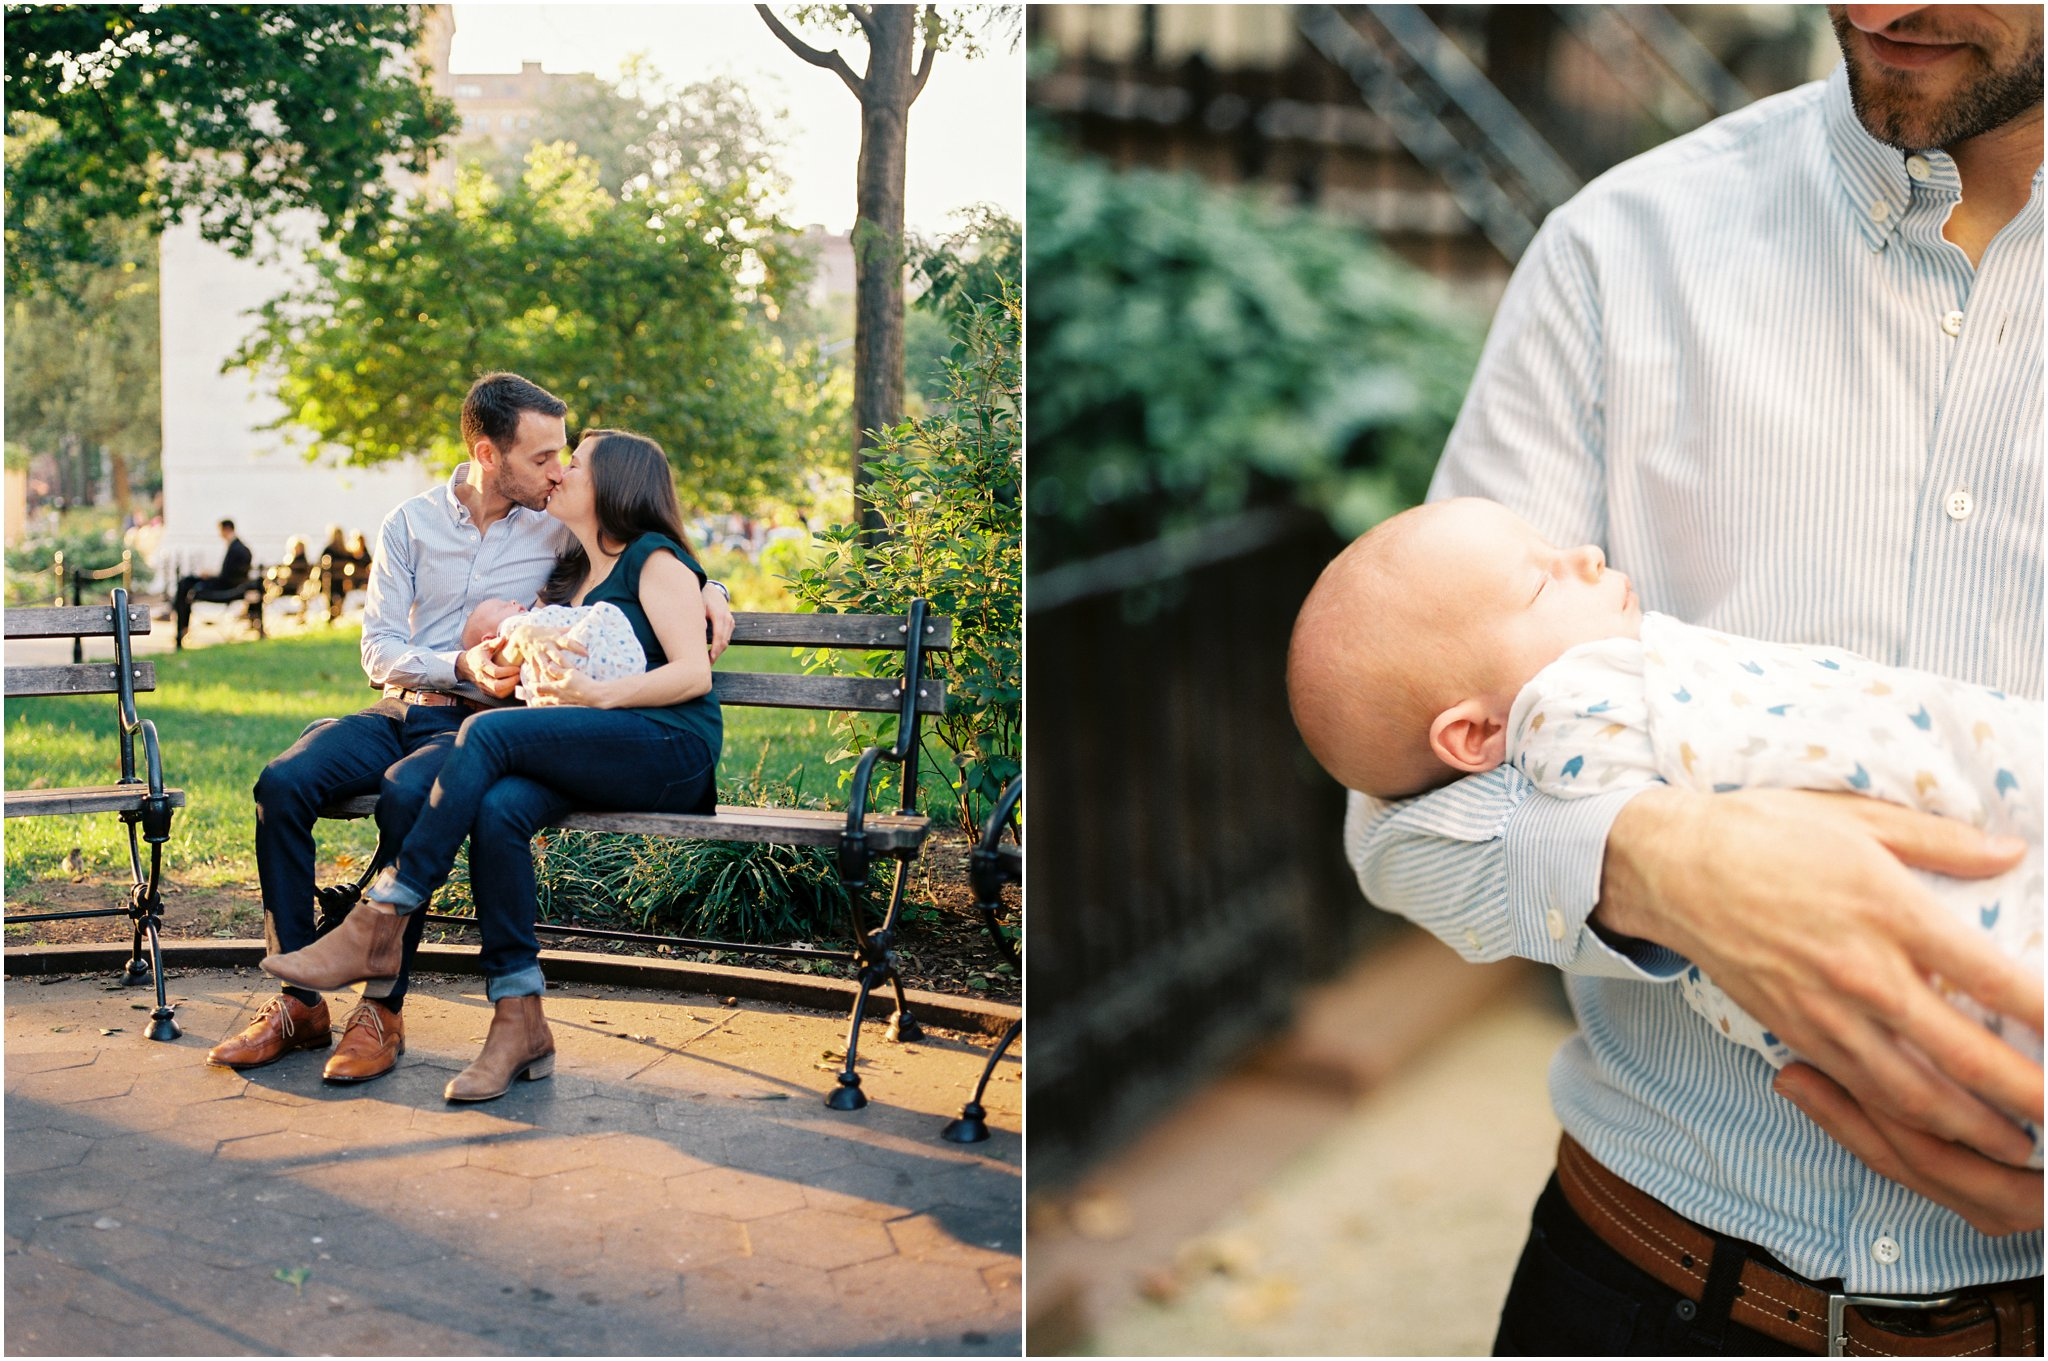 New york city newborn photos by charlottesville family photographer, amy nicole photography-018